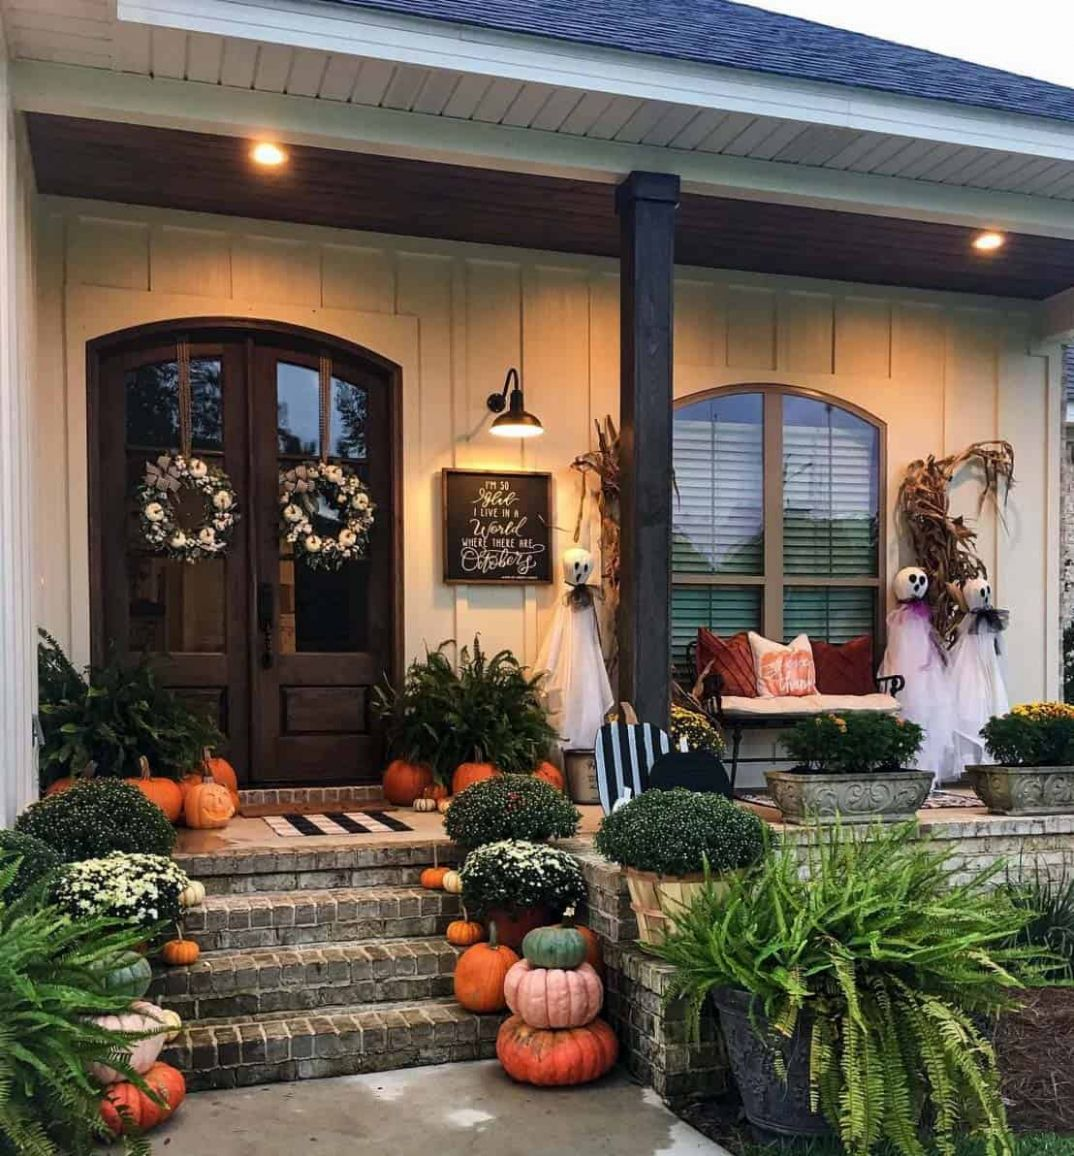 9+ Dreamy Ideas For Decorating Your Front Porch For Fall